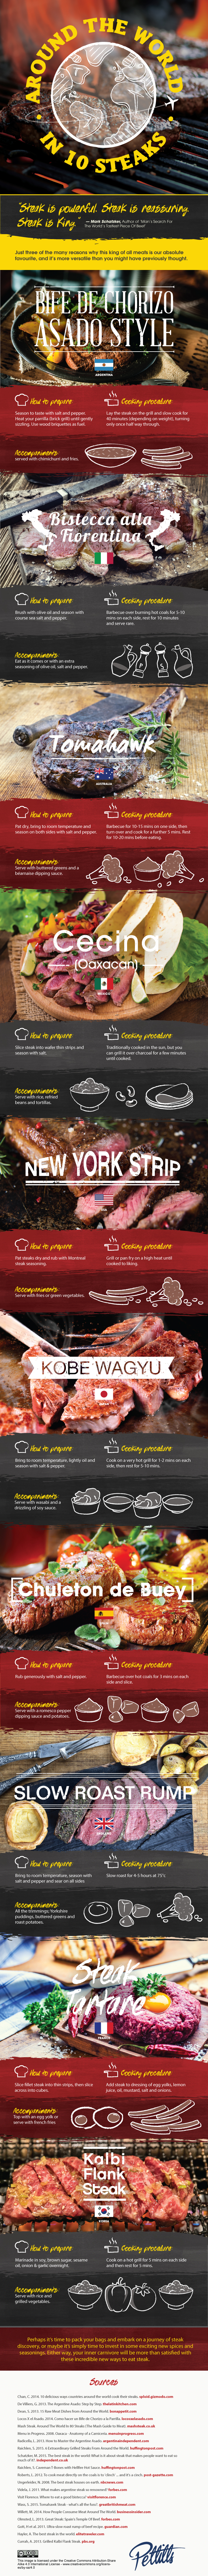 X-Ways-to-eat-steak-around-the-world-DV3